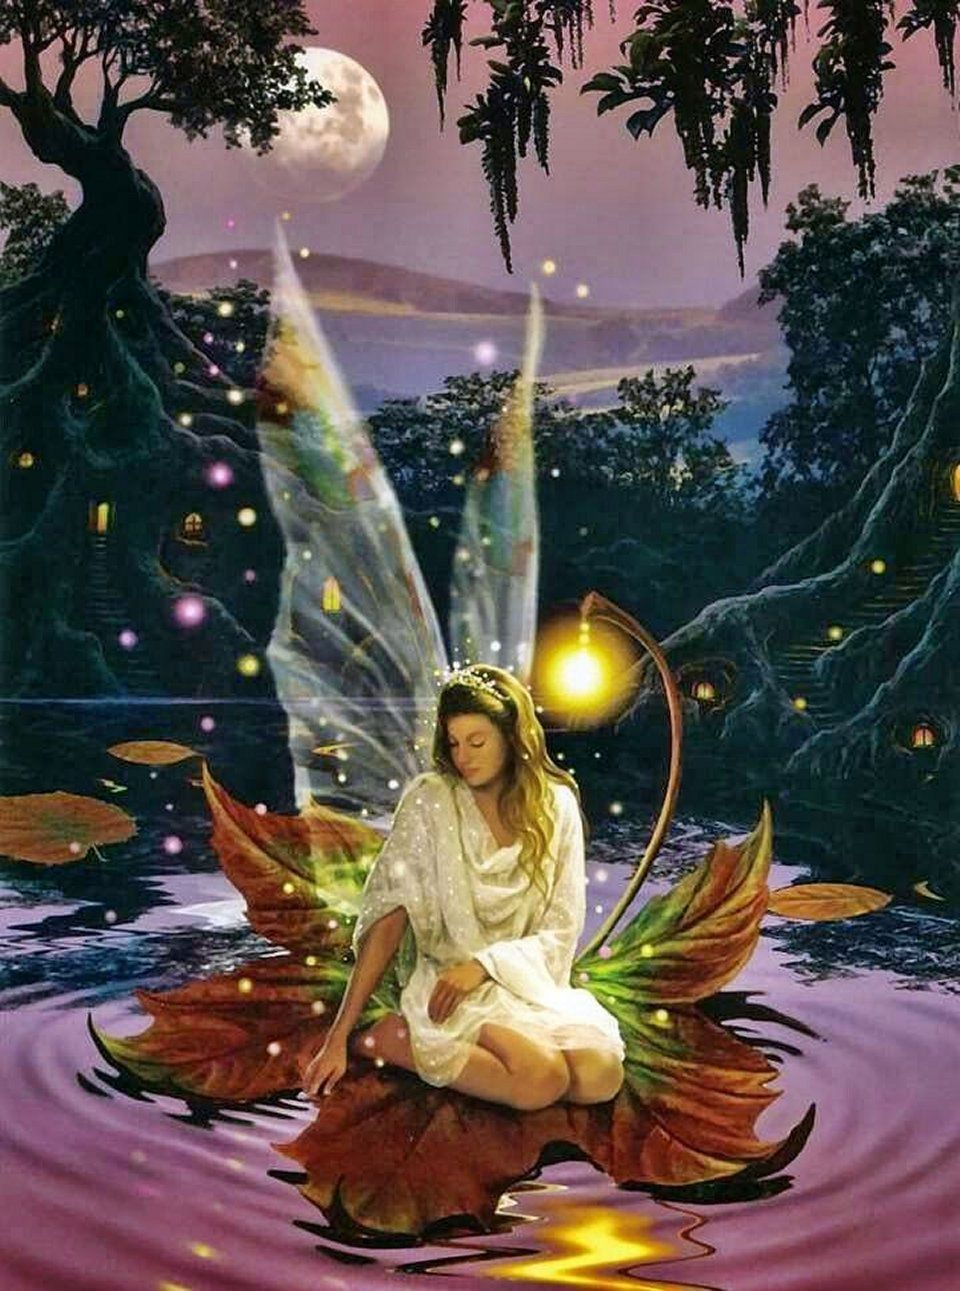 Pin by Brian Collier on Elves and fairies  Elfen und Feen